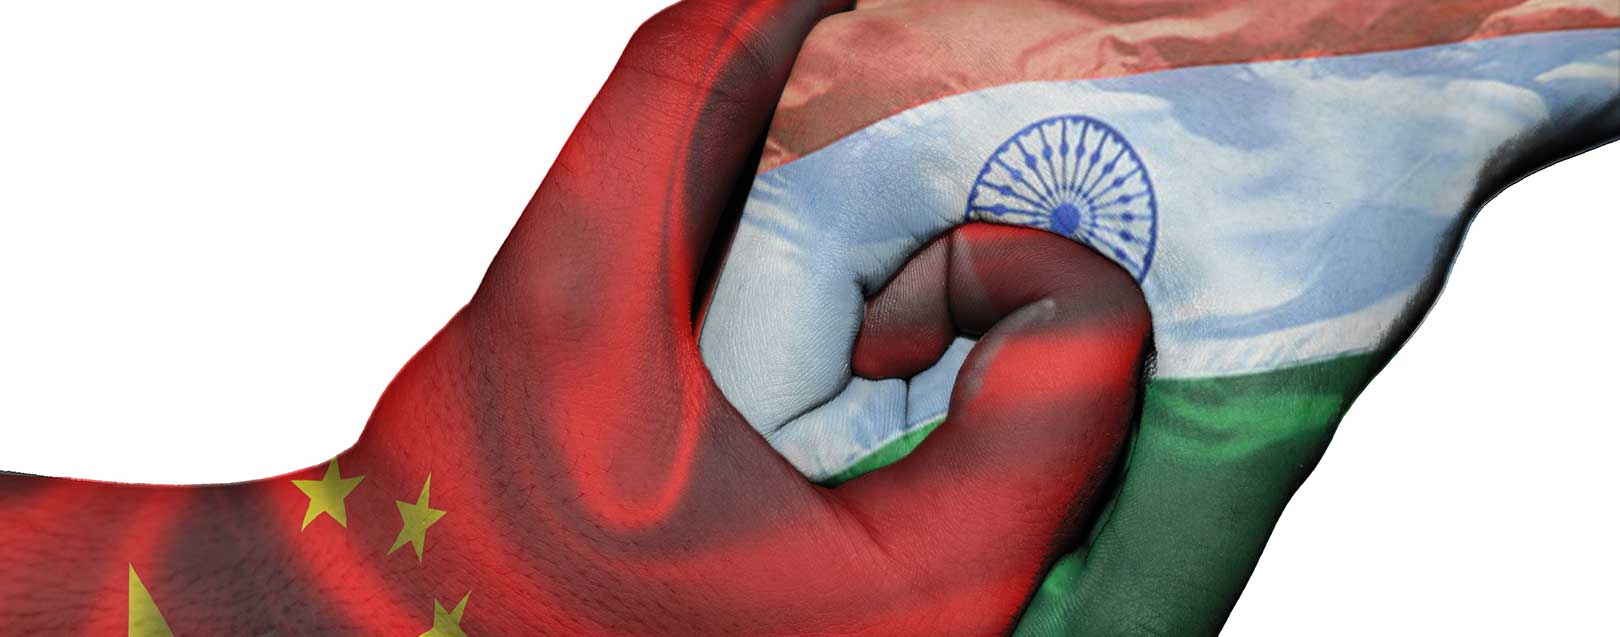 role of china and india in The question of how india should view china's role calls first for an assessment of the role and function of saarc itself there needs to be an analysis of the purpose of observers, and their role.